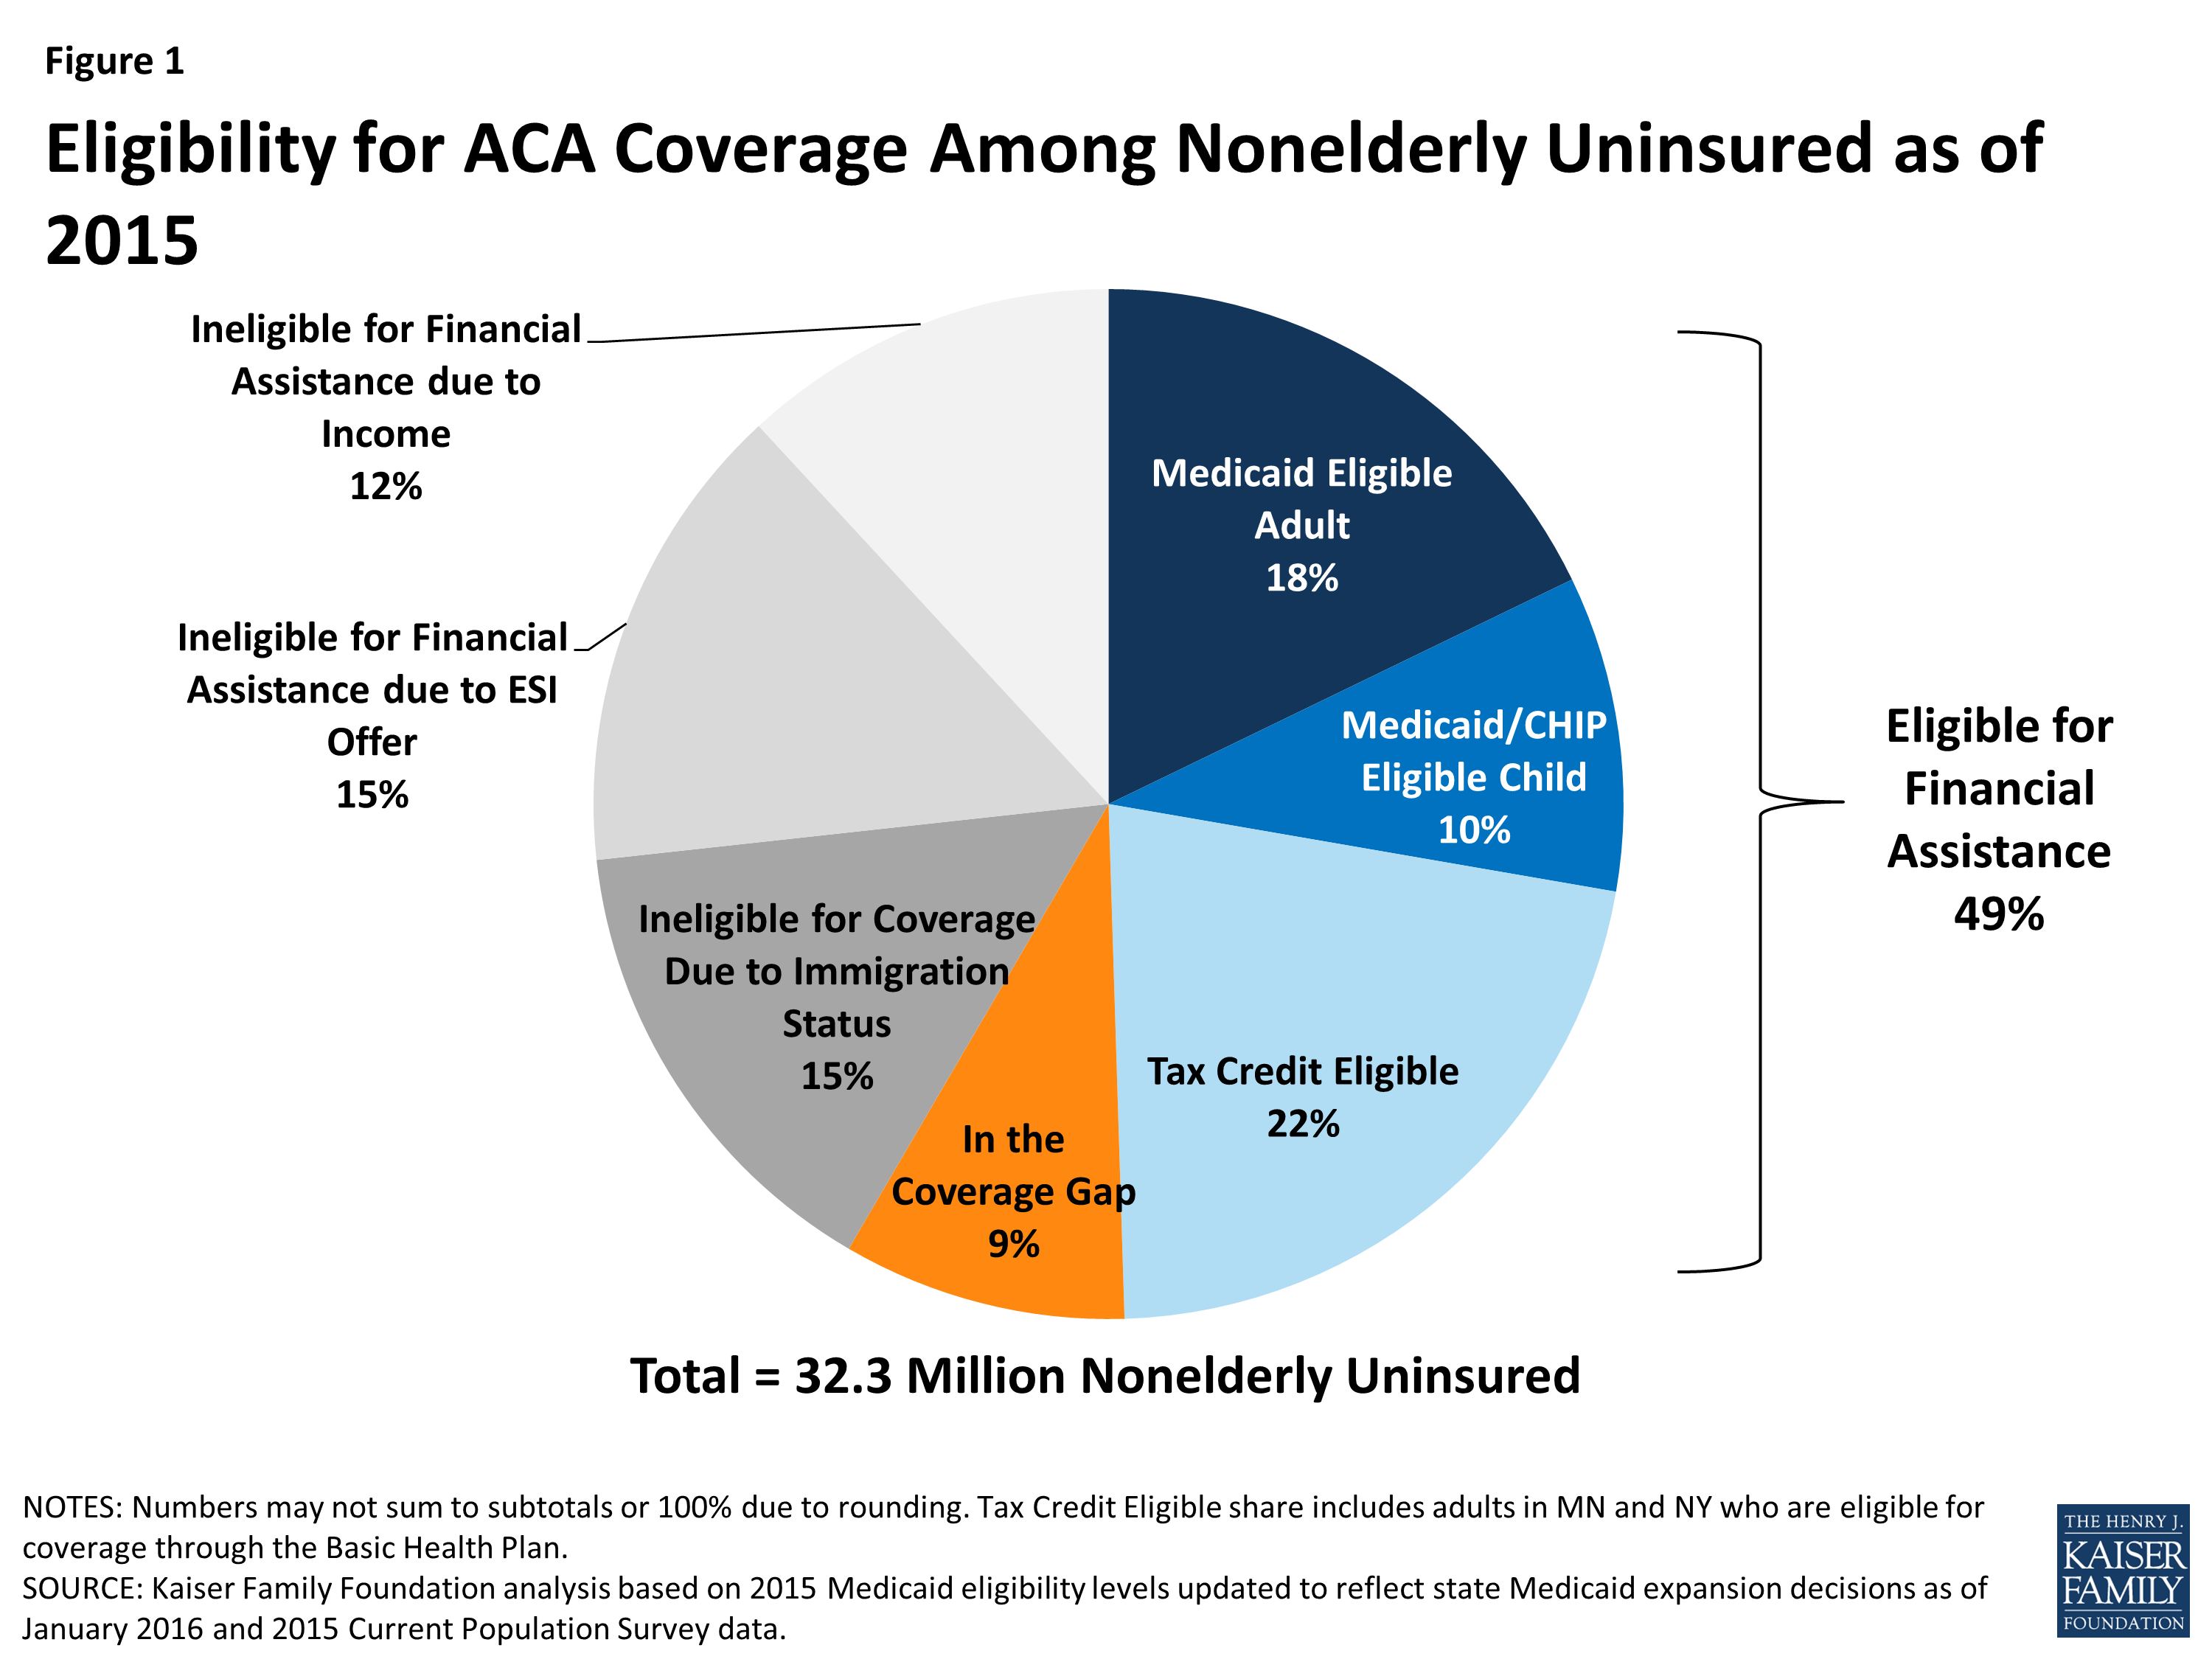 Eligiblity for ACA Coverage Among Nonelderly Uninsured as of 2015